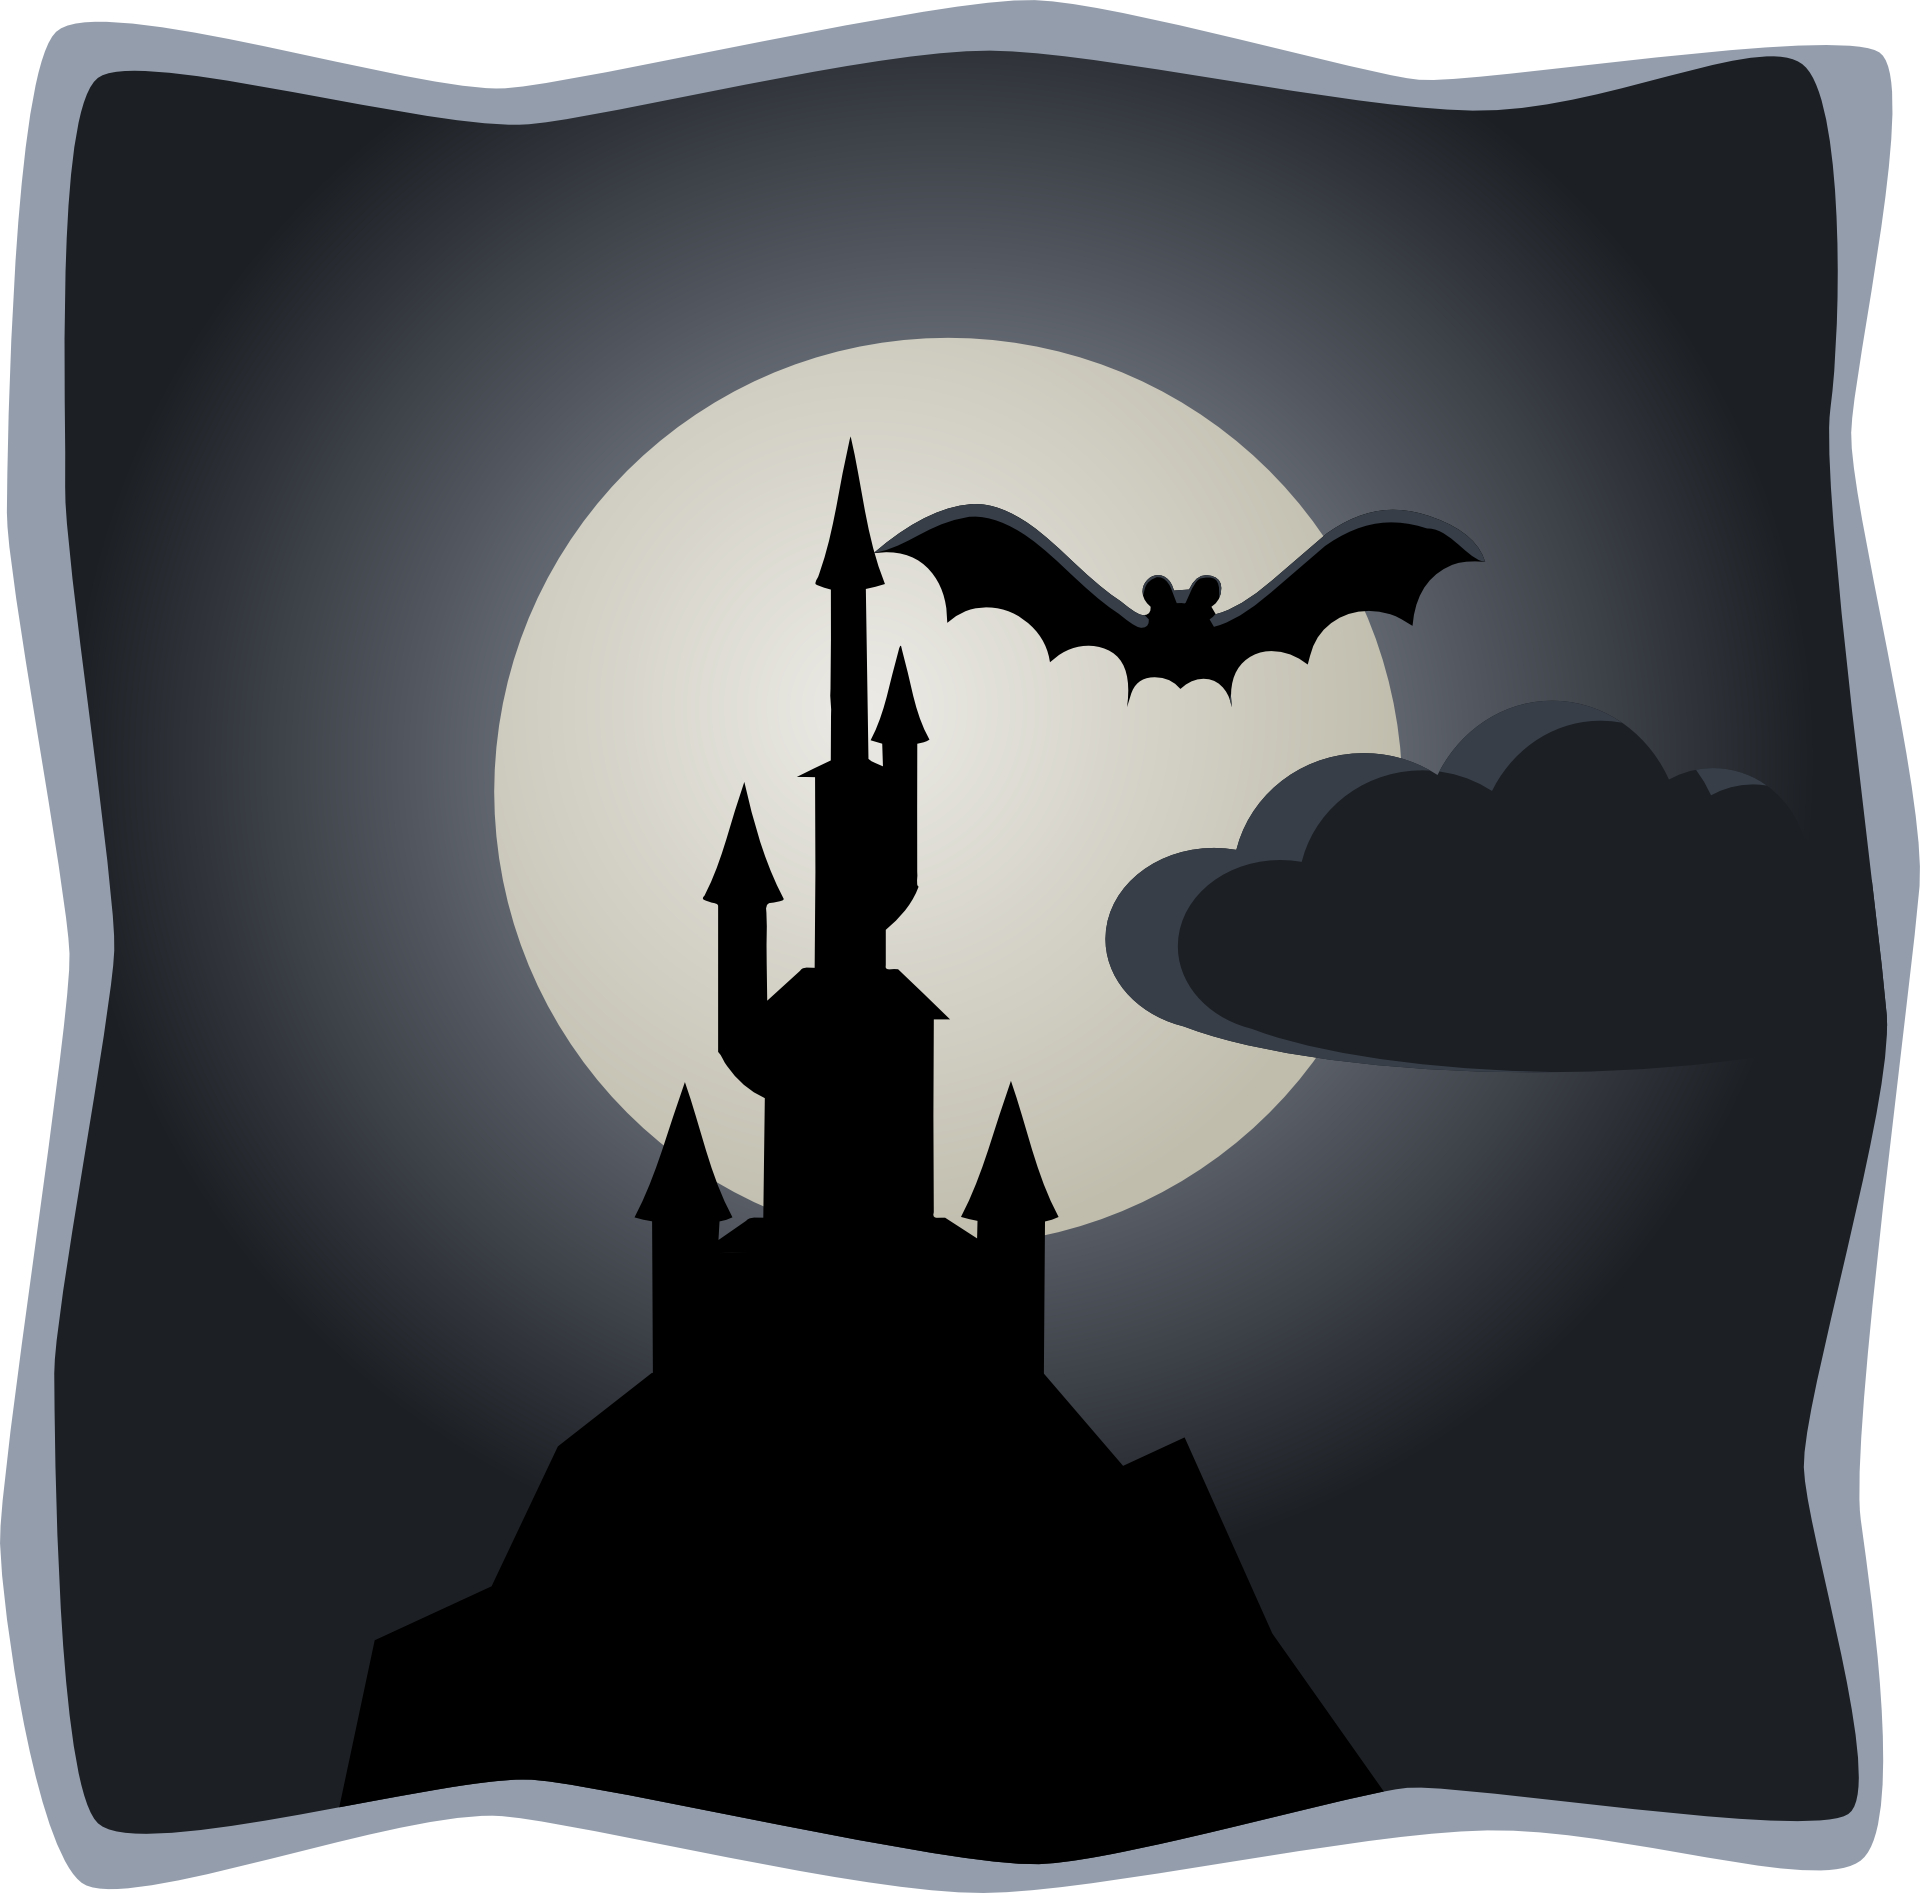 Cartoon ngiht outline drawing,moon,bat silhouette vector